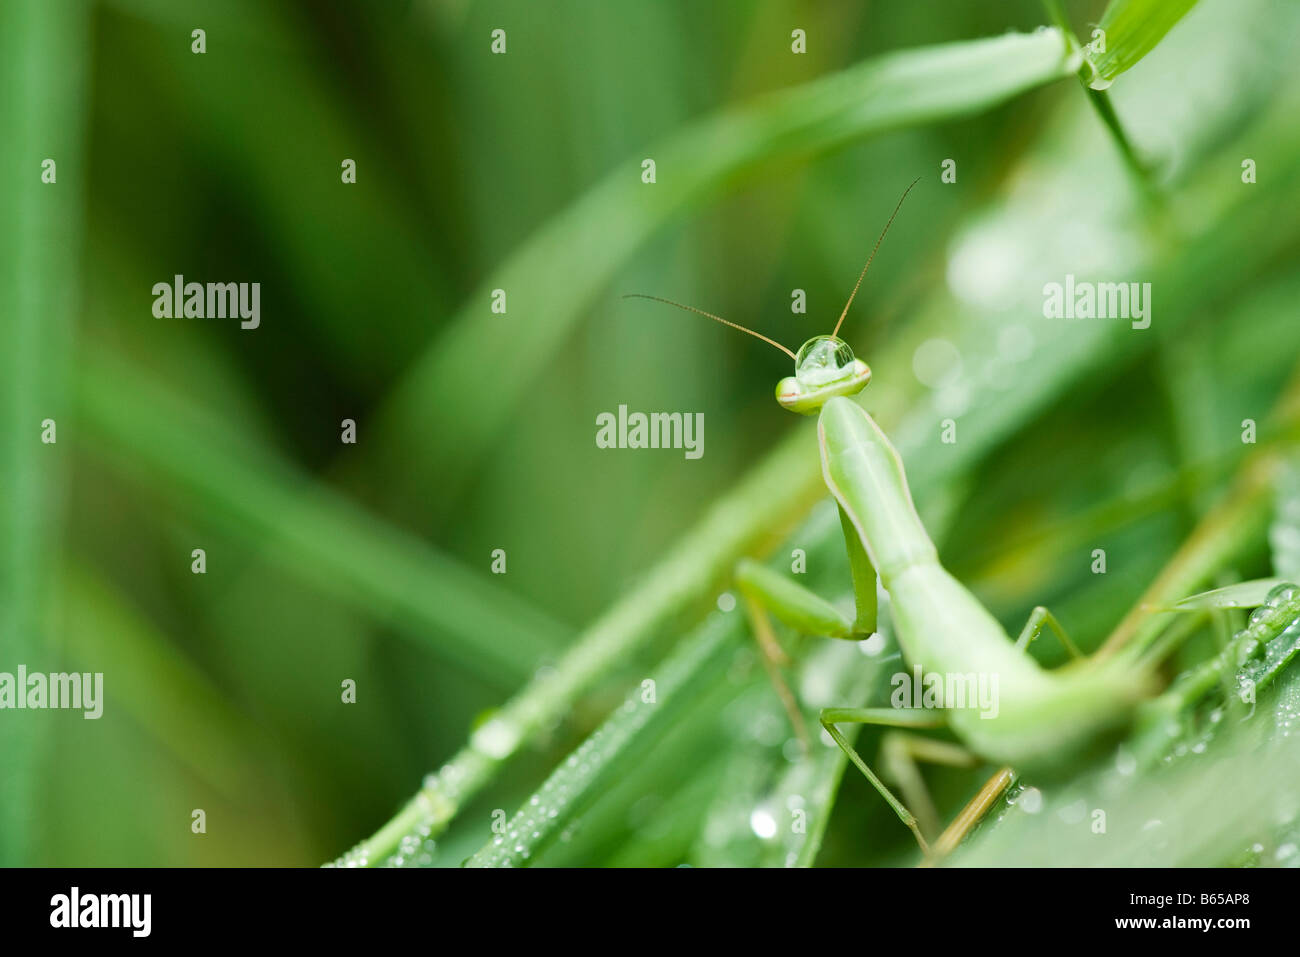 Praying Mantis blending in with it's green environment, hunting prey - Stock Image